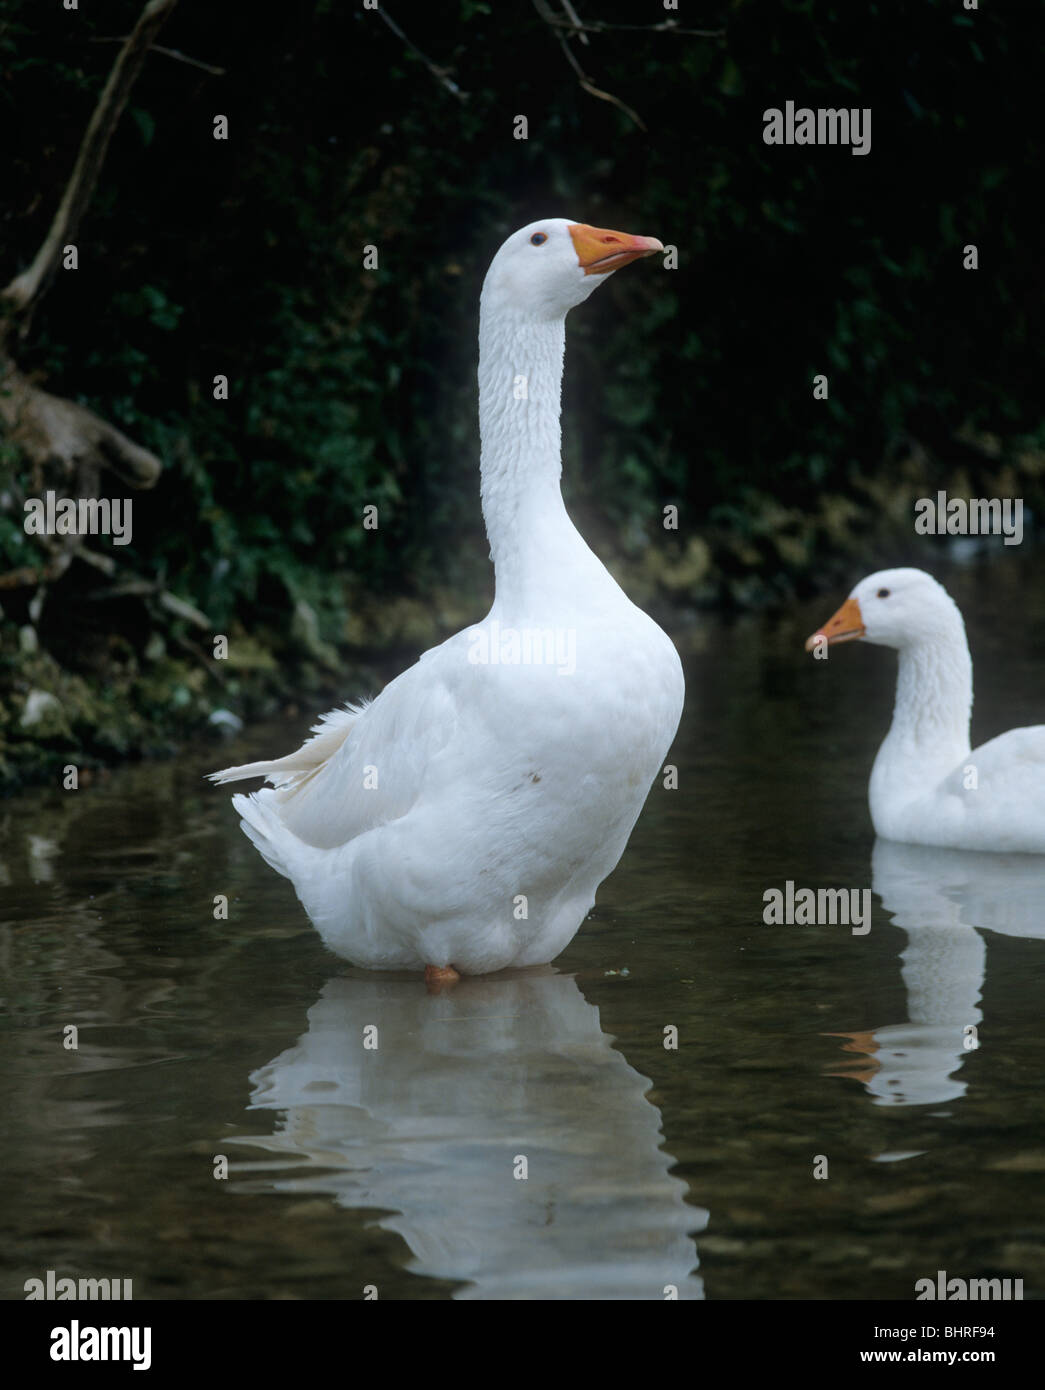 Adult white farmed goose standing in a stream - Stock Image